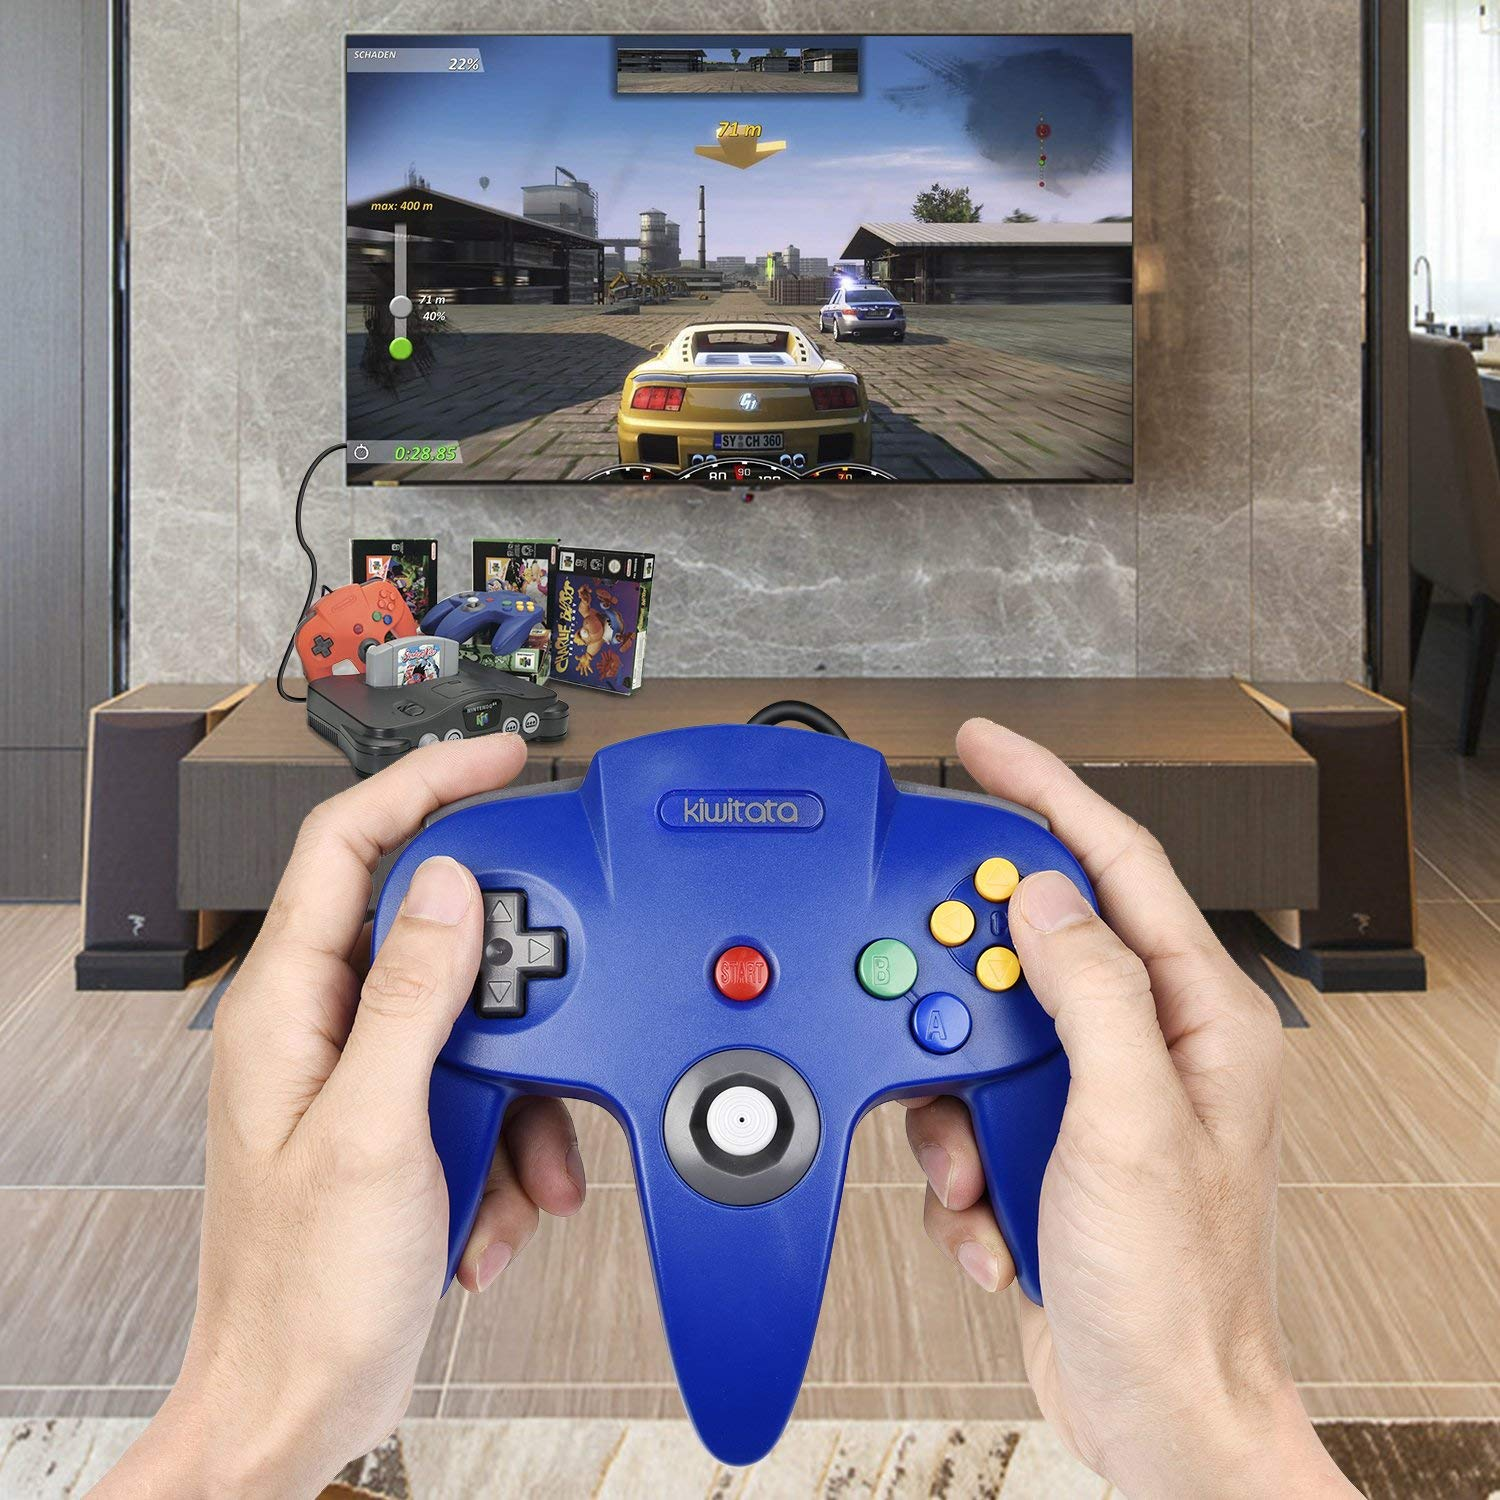 2xClassic N64 Controller,kiwitata Retro Wired Gamepad Controller Joystick for N64 Console Video Games System Red+Blue by kiwitata (Image #7)